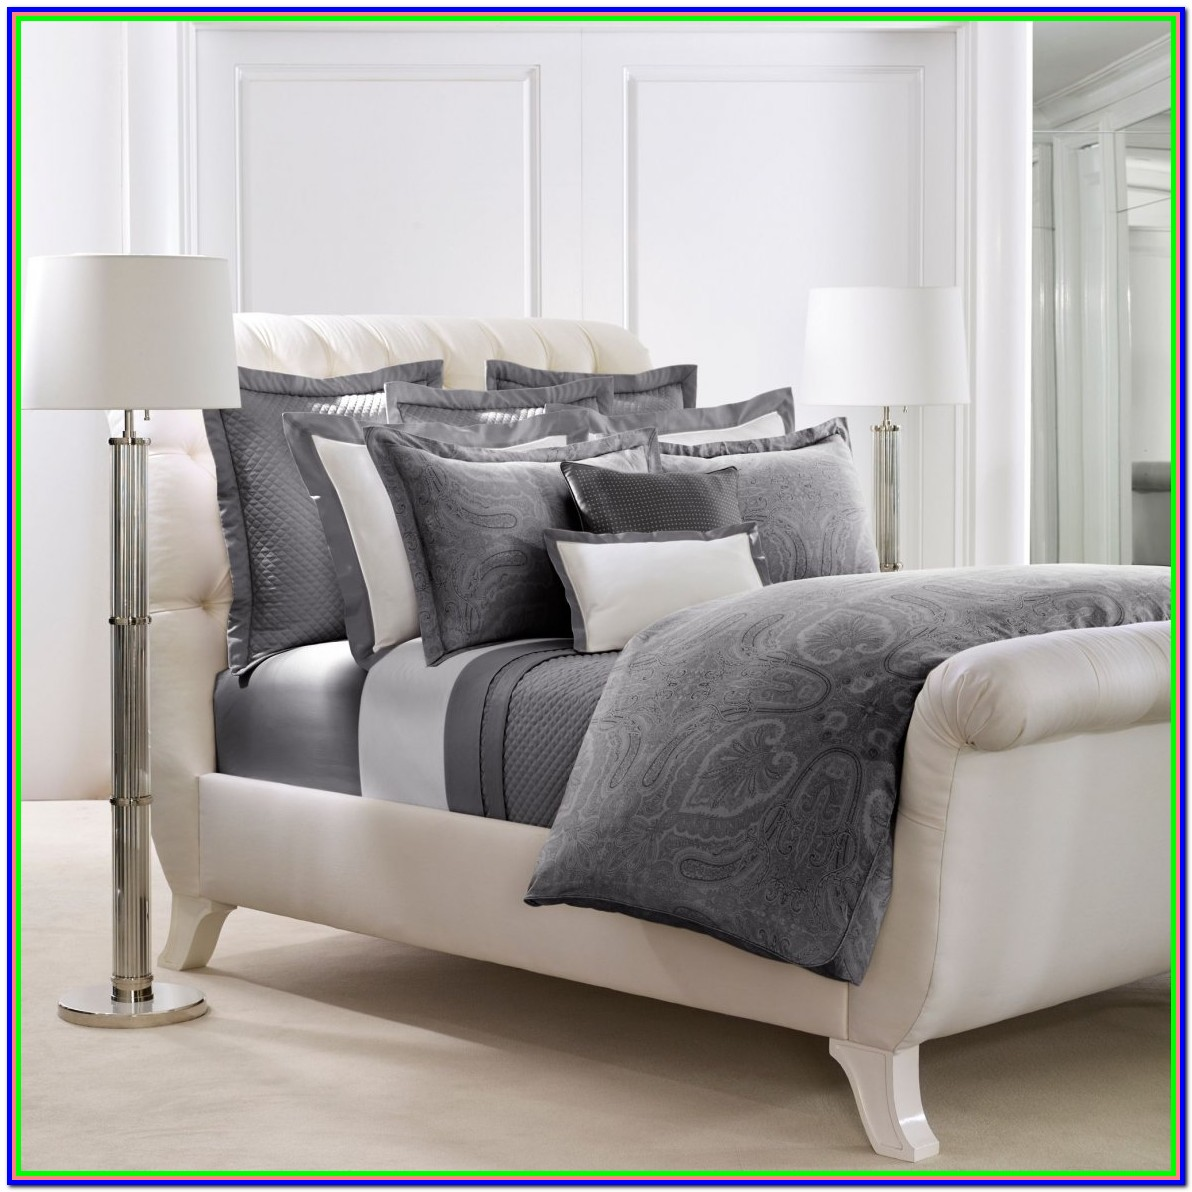 Discontinued Ralph Lauren Bedding Home Furnishings